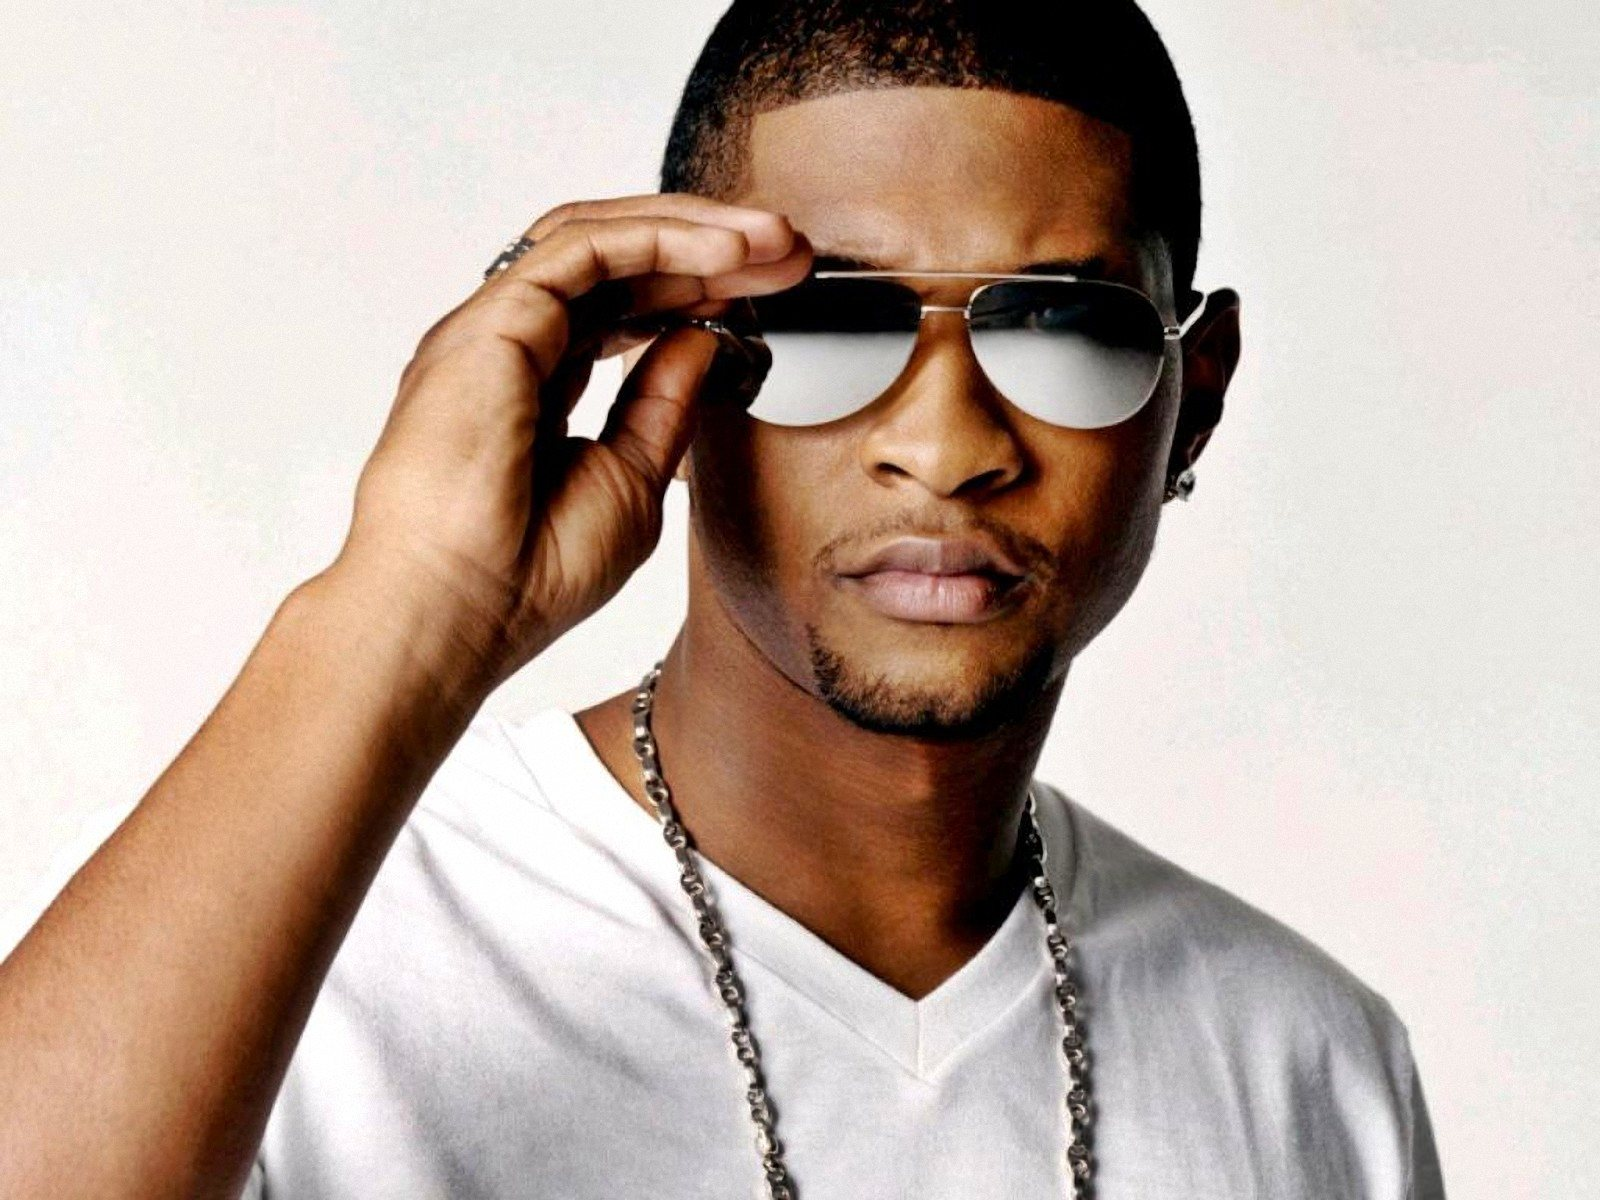 Usher Faces New $10 mil Lawsuit from Alleged Sex Partner, He 'Exposed' Me to STD